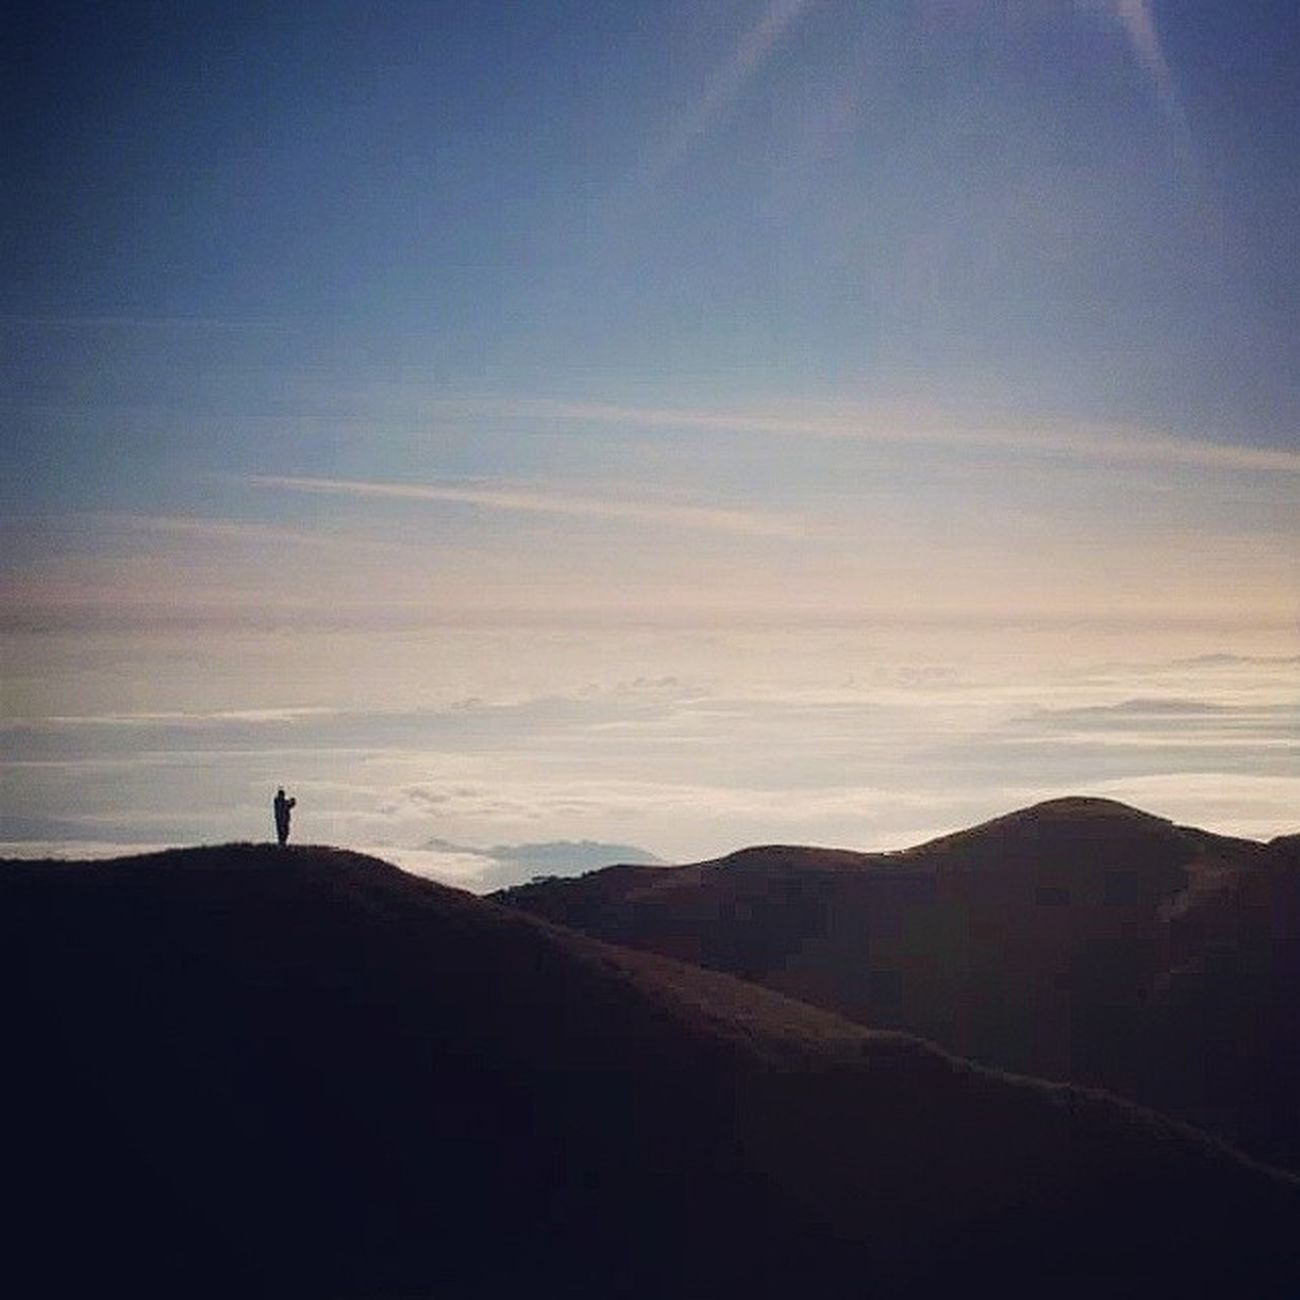 He found Solace from peak 4 of mt. Pulag Seaofclouds Alone